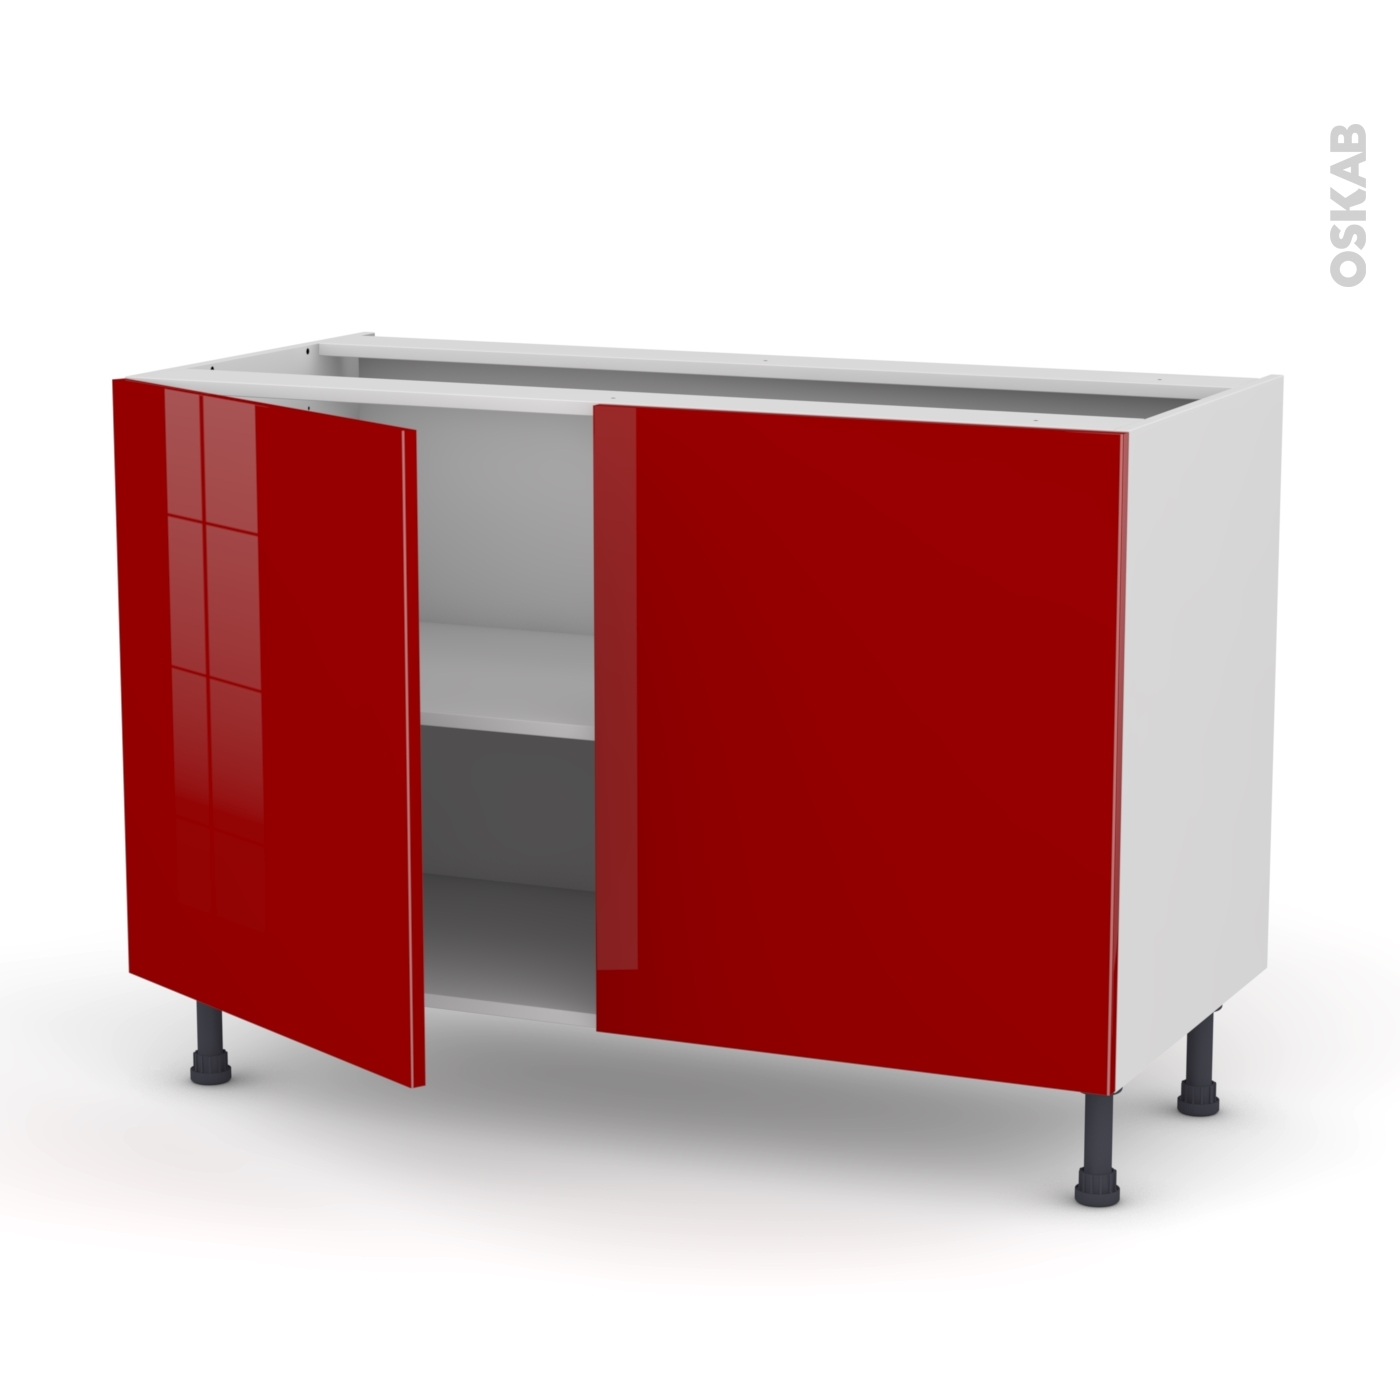 Buffet Cuisine Rouge Simple Verrines Italiennes Au Pesto Mousse  # Buffet Bas Long Bureau